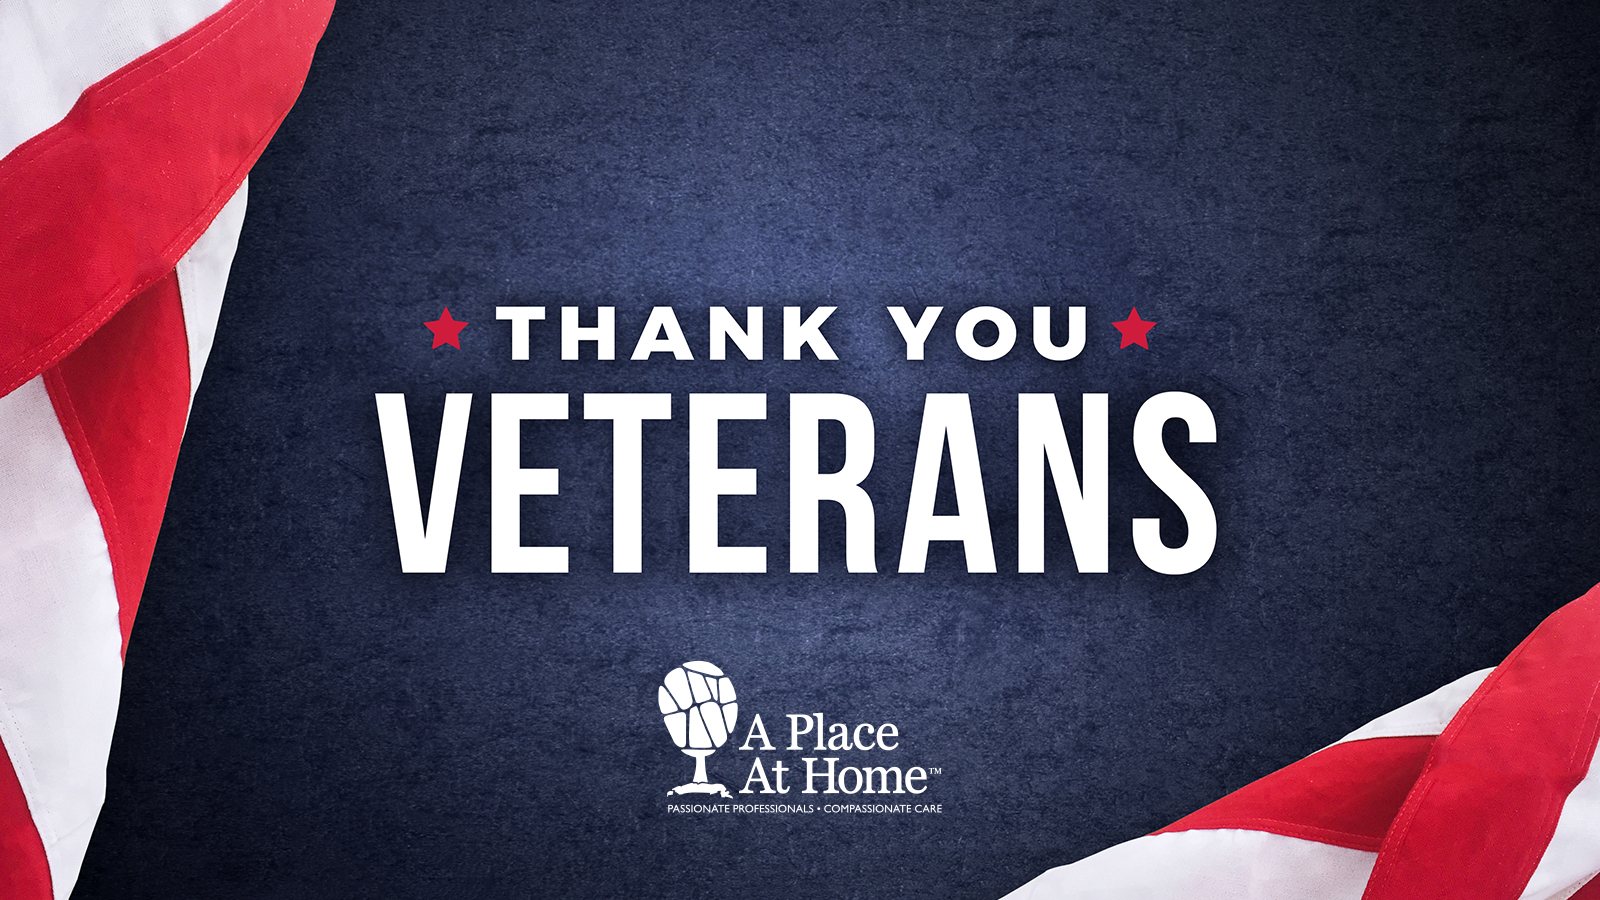 Thank You Veterans - A Place At Home